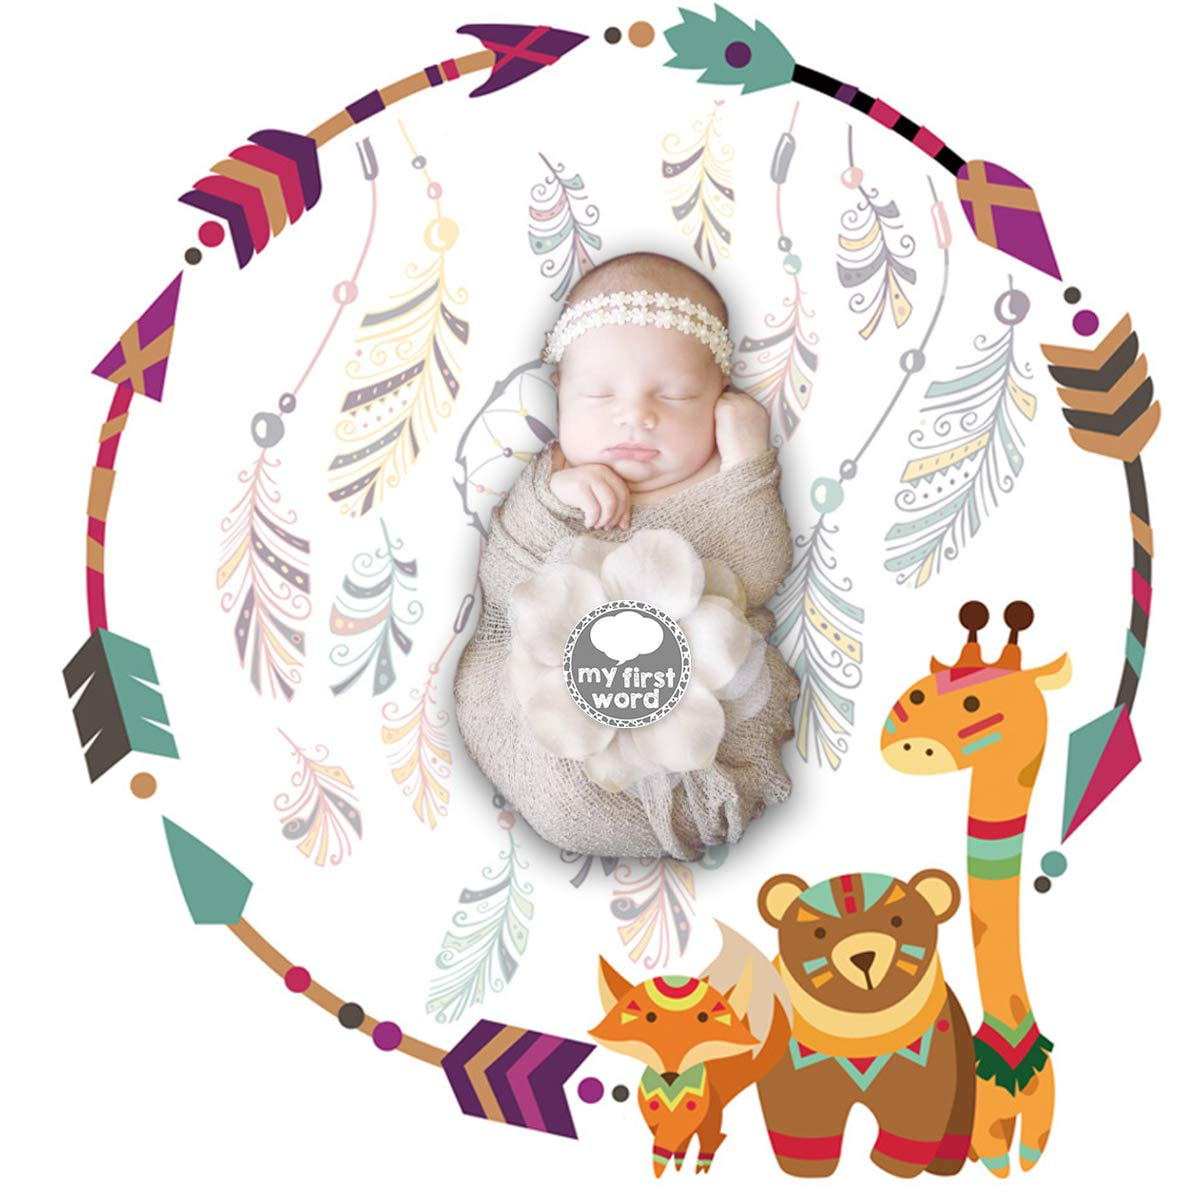 Owlike UPSTONE Unisex Baby Monthly Milestone Blanket with 12 Achievement Stickers,Monthly Photography Backdrop Blankets Newborn Baby Shower Gifts